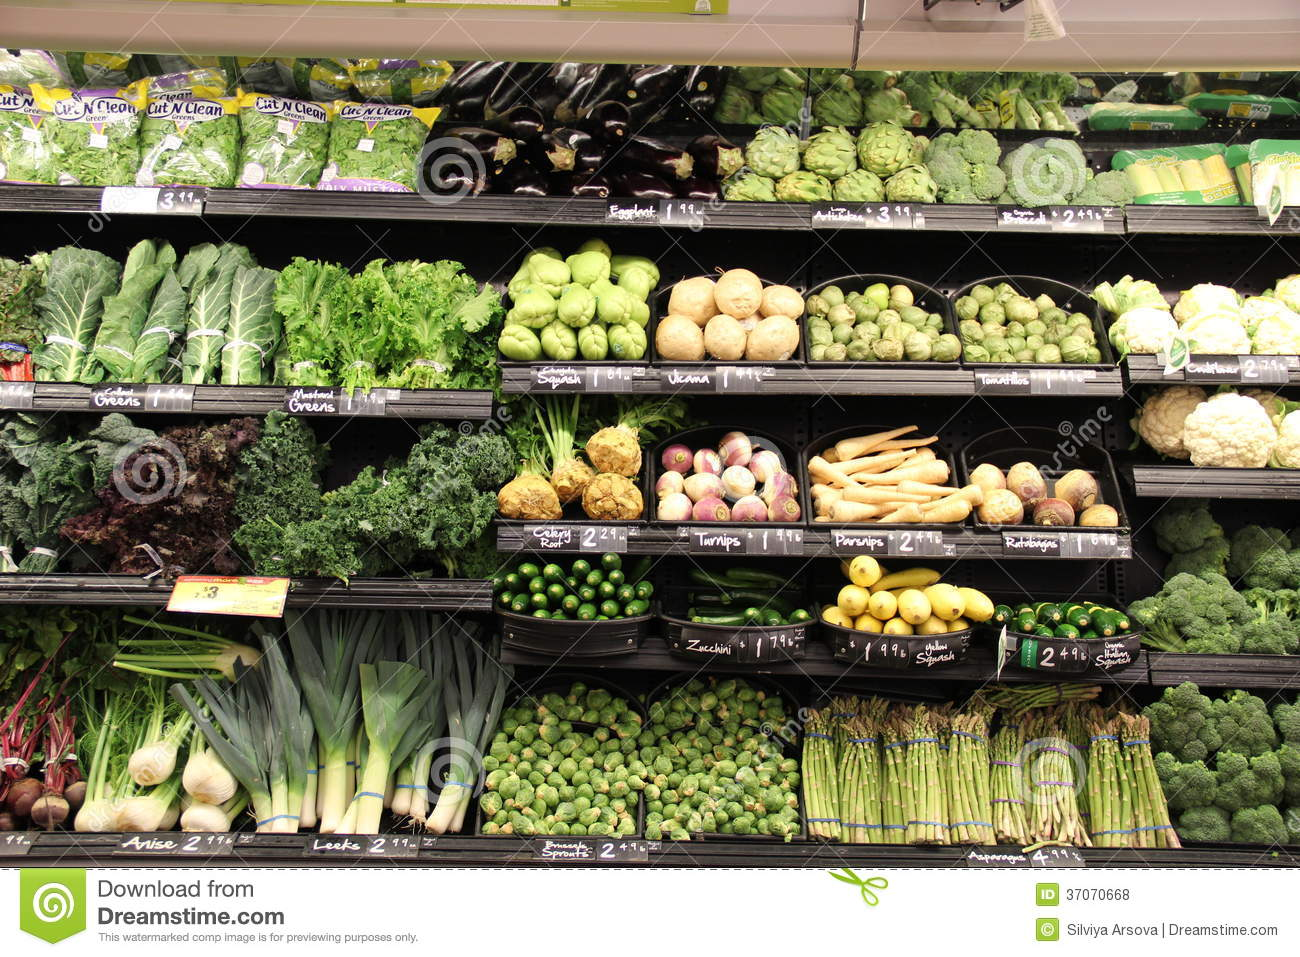 green-vegetables-section-grocery-store-37070668.jpg